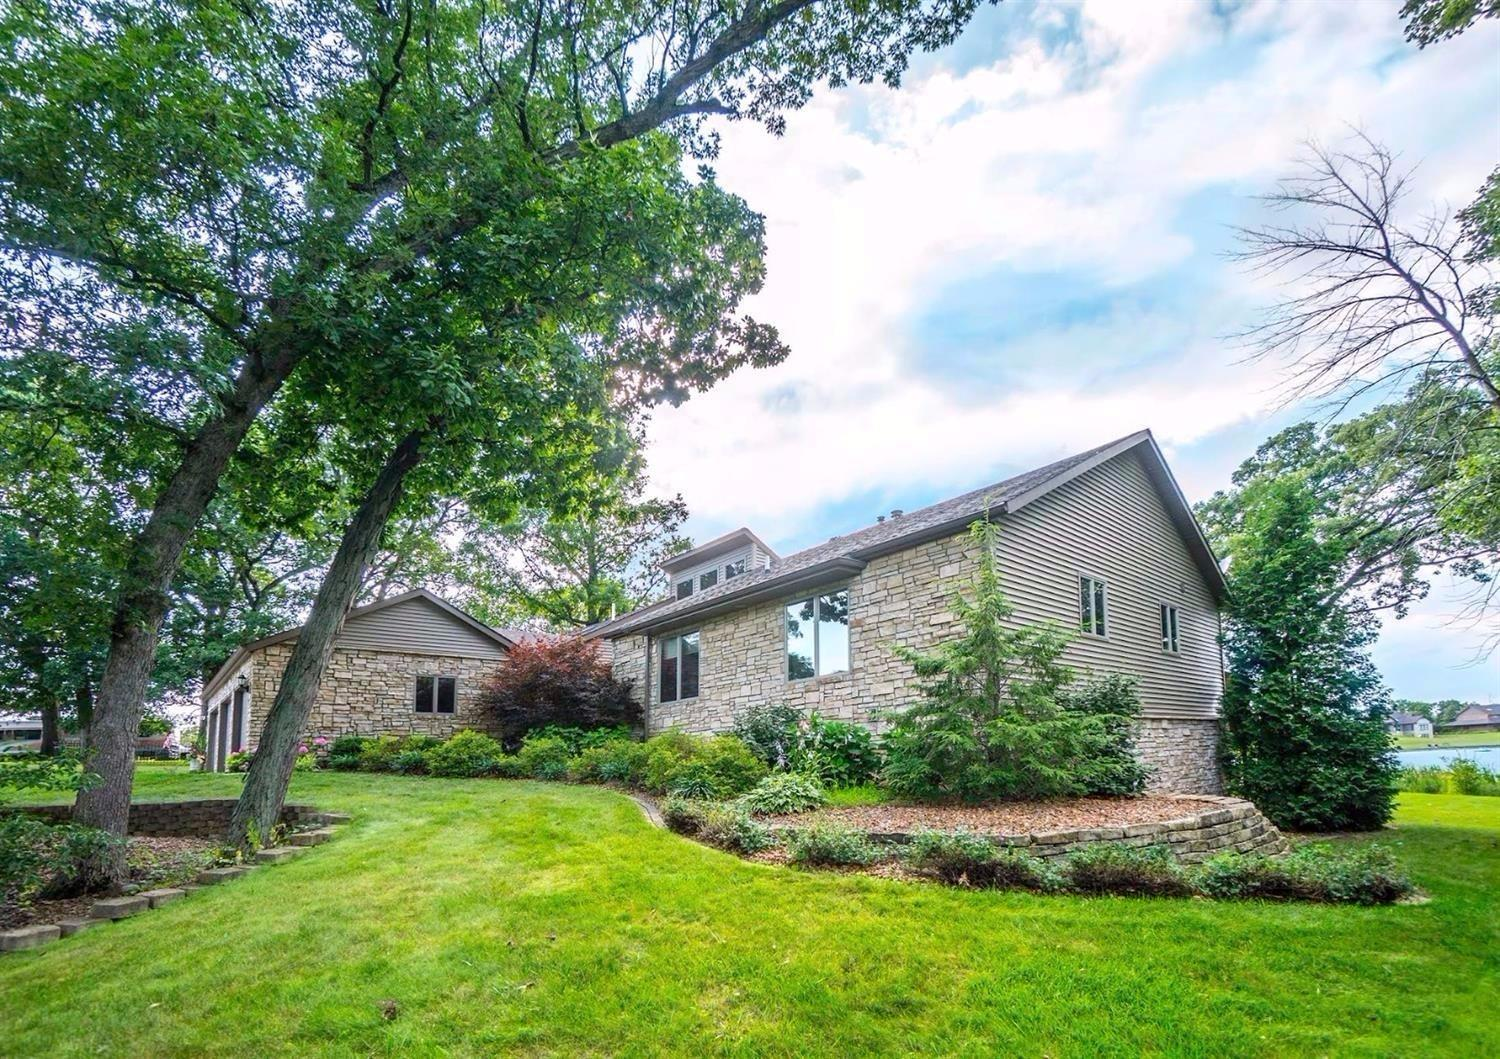 11490 FAIRBANKS PLACE, CROWN POINT, IN 46307